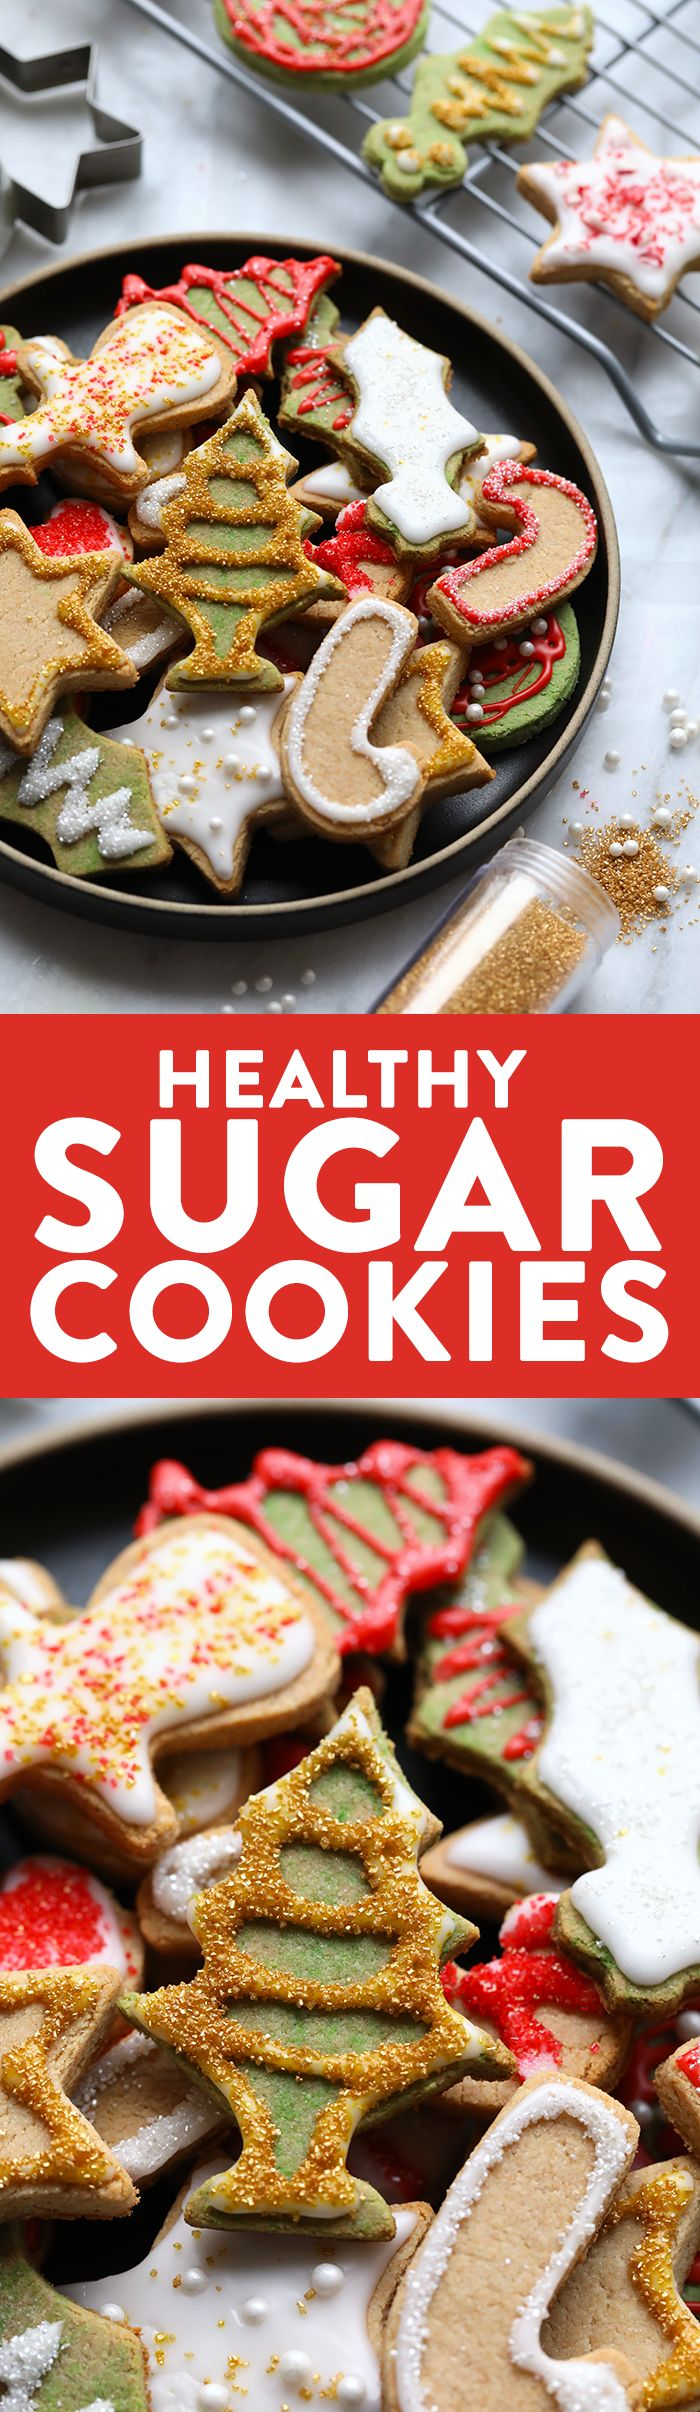 These Healthy Holiday Sugar Cookies are grain-free and refined-sugar free made with almond meal and honey. They are exactly what you are looking for when you are craving your favorite holiday cookies, but lightened up! Make them for your next holiday part http://eatdojo.com/easy-healthy-dessert-recipes-family-birthday/